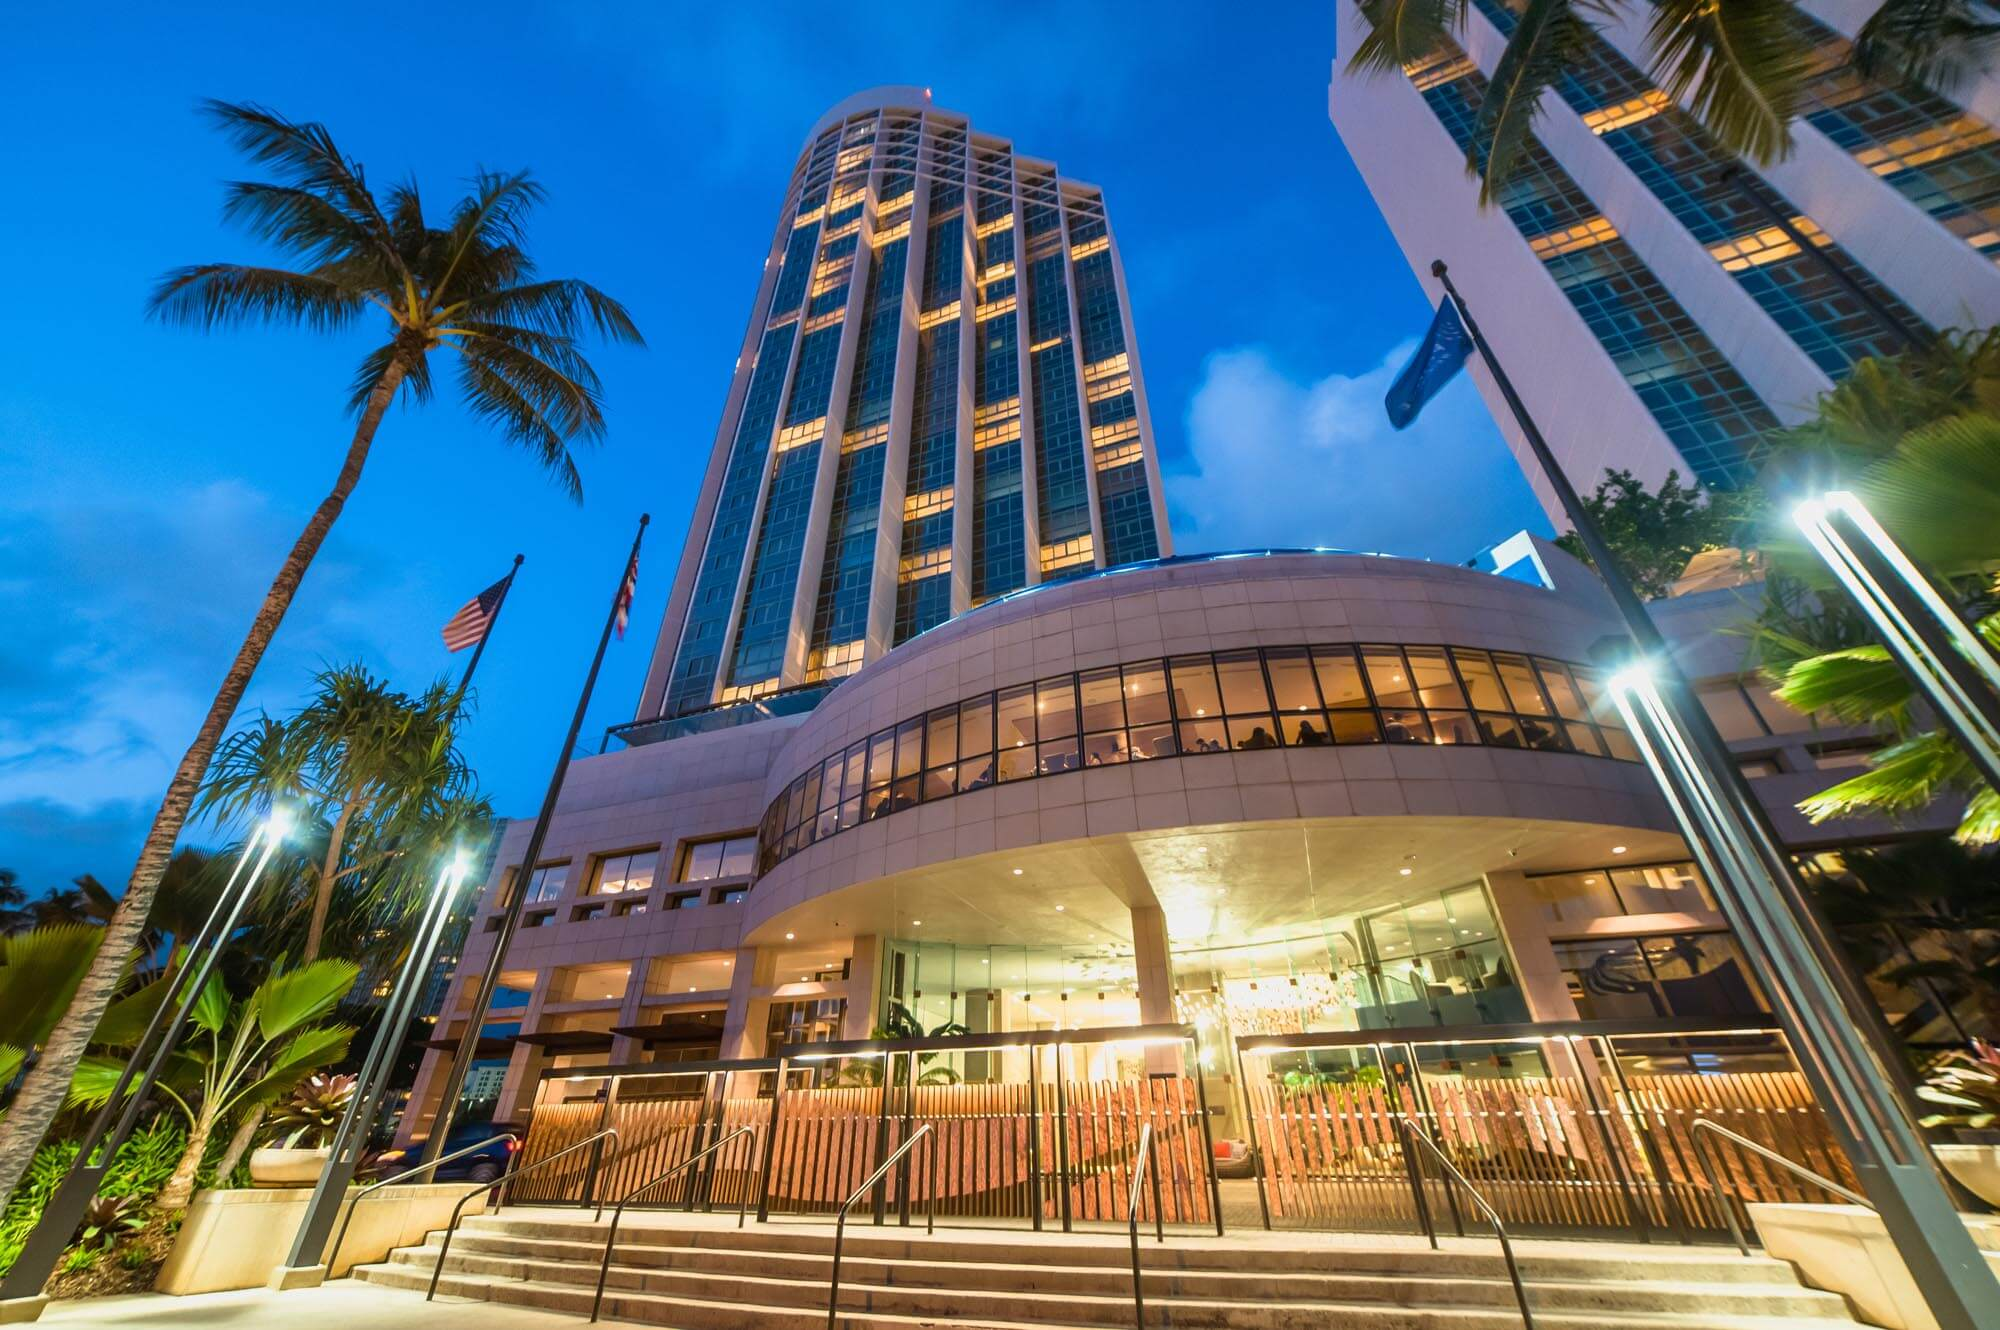 Prince Waikiki hotel exterior at night.